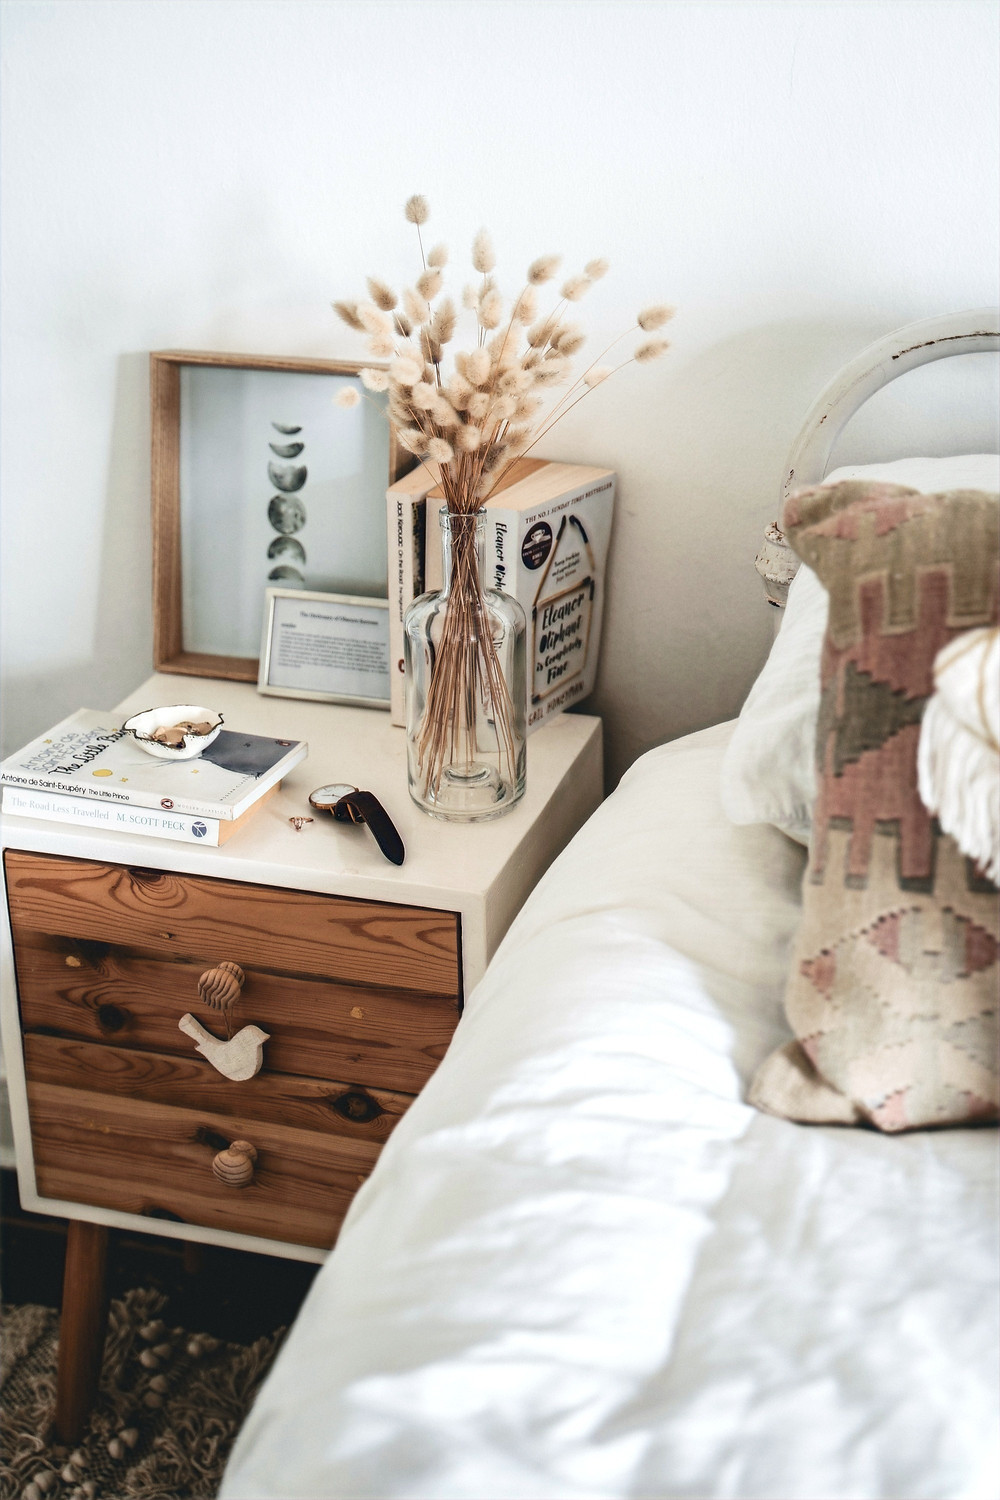 An arrangement of boho style decorations are photographed on a nightstand beside a bed.